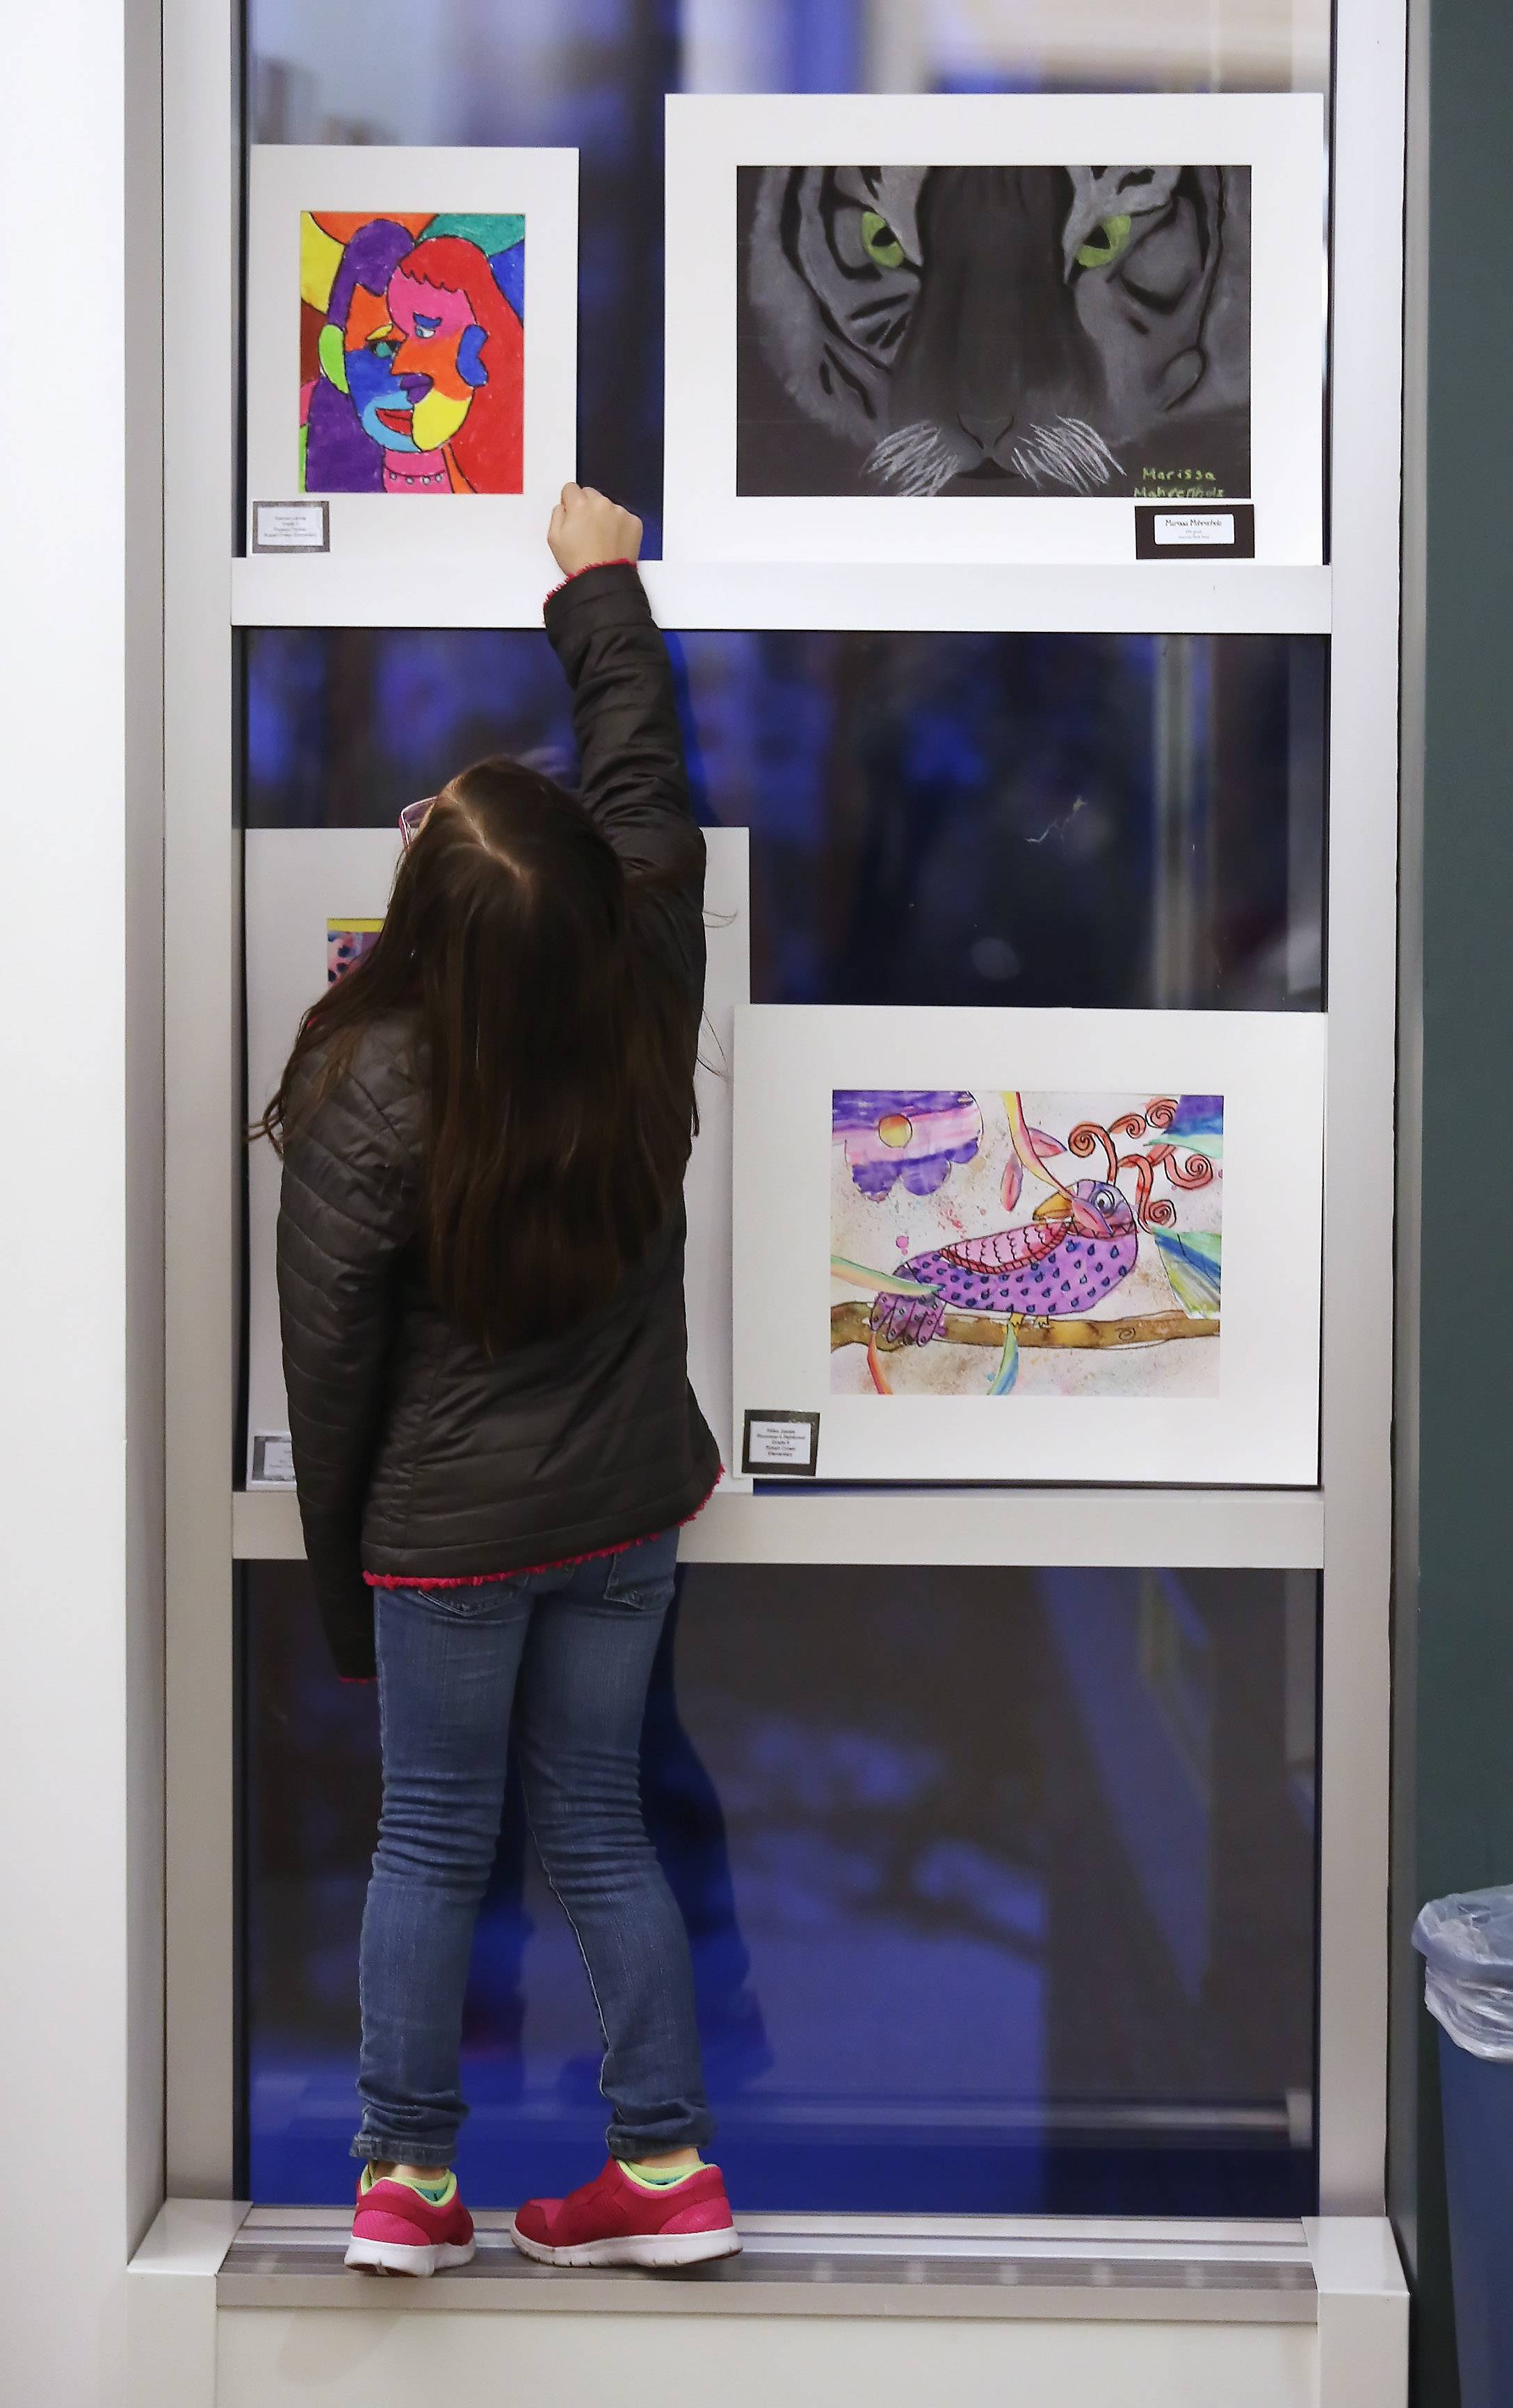 Gilbert R. Boucher II/gboucher@dailyherald.comThird grader Tahiz Hernanadez looks up at a picture by Robert Crown School third grader Delany Lemay during the Studio 118 Art Show Open House by Wauconda School District 118 Thursday at Wauconda Area Library. The show featured over 600 artworks from students in Wauconda.